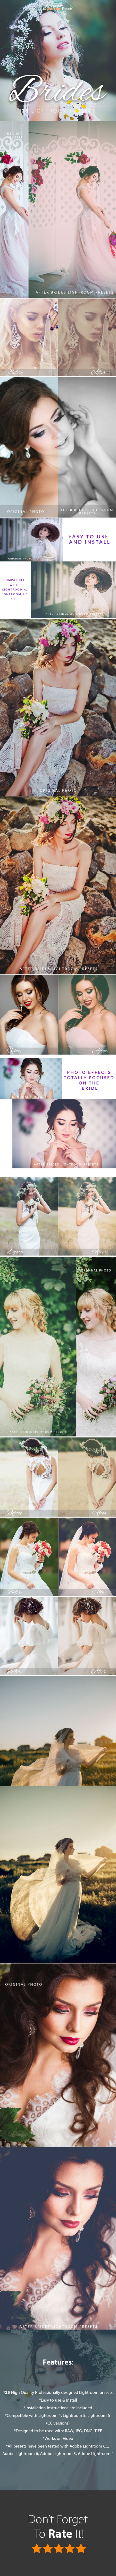 GraphicRiver Brides Pro Lightroom Presets For Lightroom 4 5 6 CC 20811369